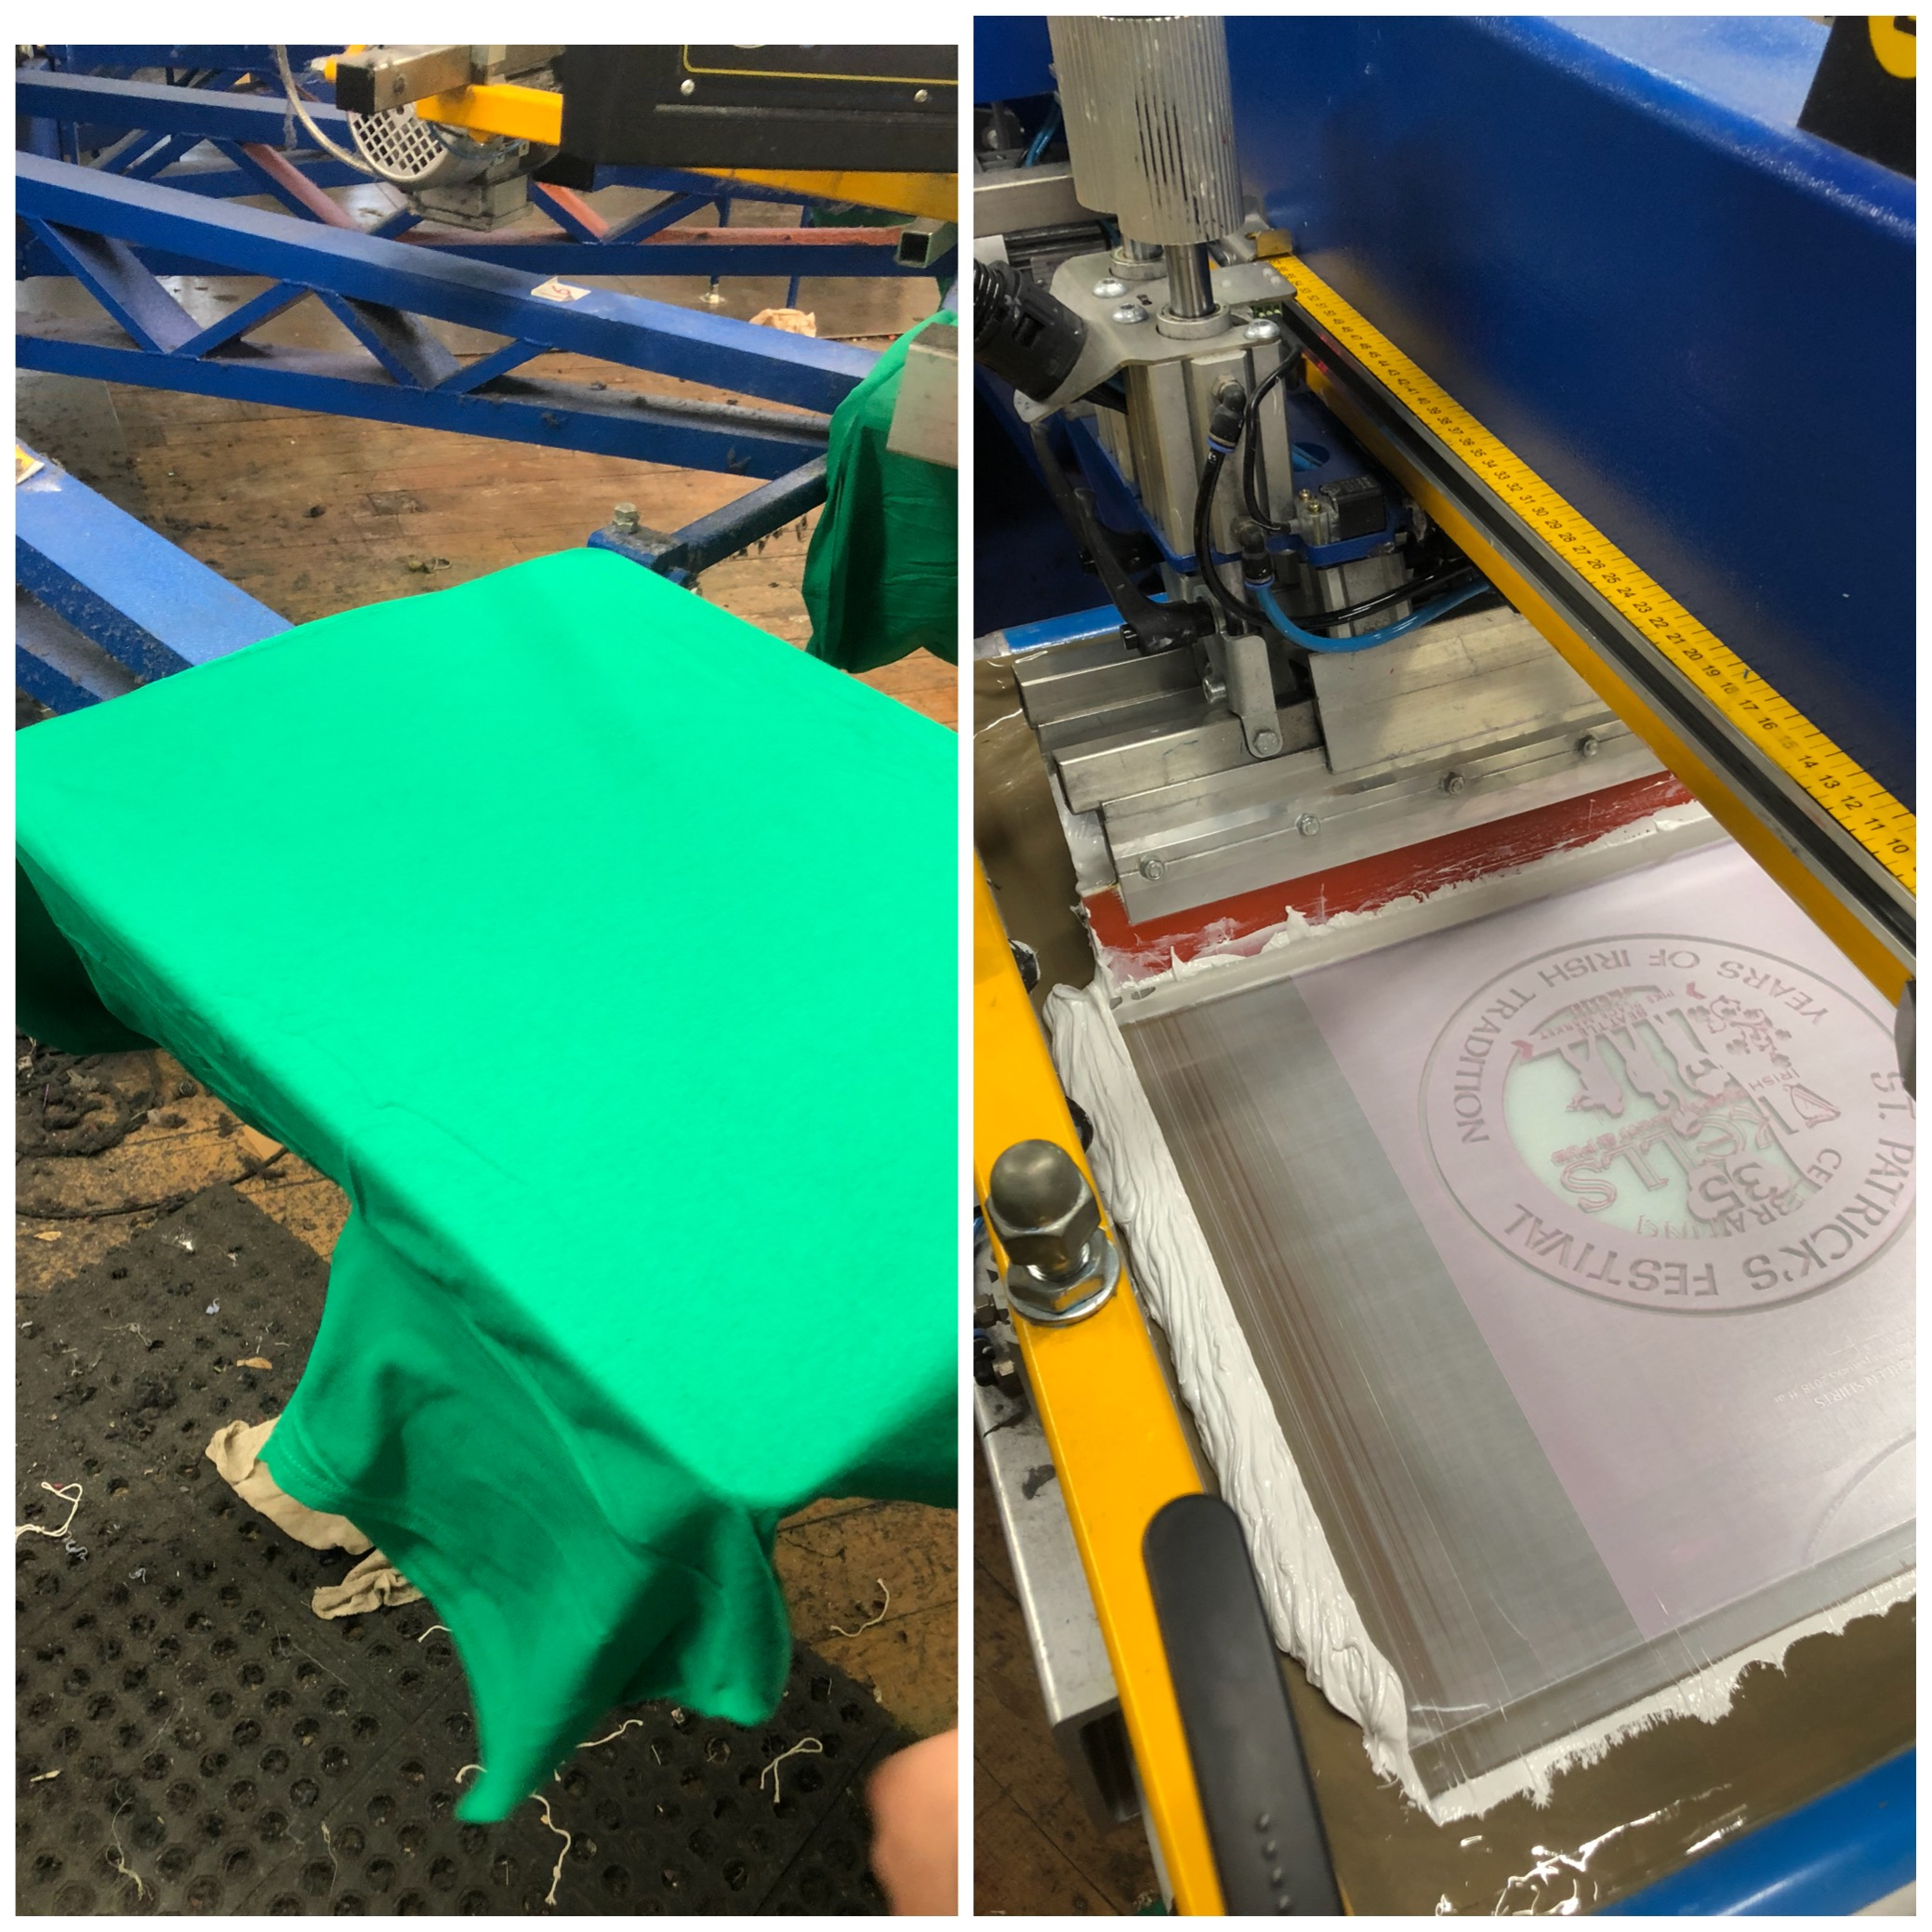 Screen Printing:   - Screen printing is the method in which ink is forced through the pores in a mesh screen directly on to the surface of a product by the wiping of a squeegee across the screen. This process is repeated for each of the colors in the design until the graphic is completed. This method is best for large orders as it is the quickest and generally the most cost effective method of printing. Orders with personalization (individual names and numbers) needs are not suitable for screen printing.Discharge screen printing services are also available. Please be sure to double check and ask if your product meets discharge printing criteria.